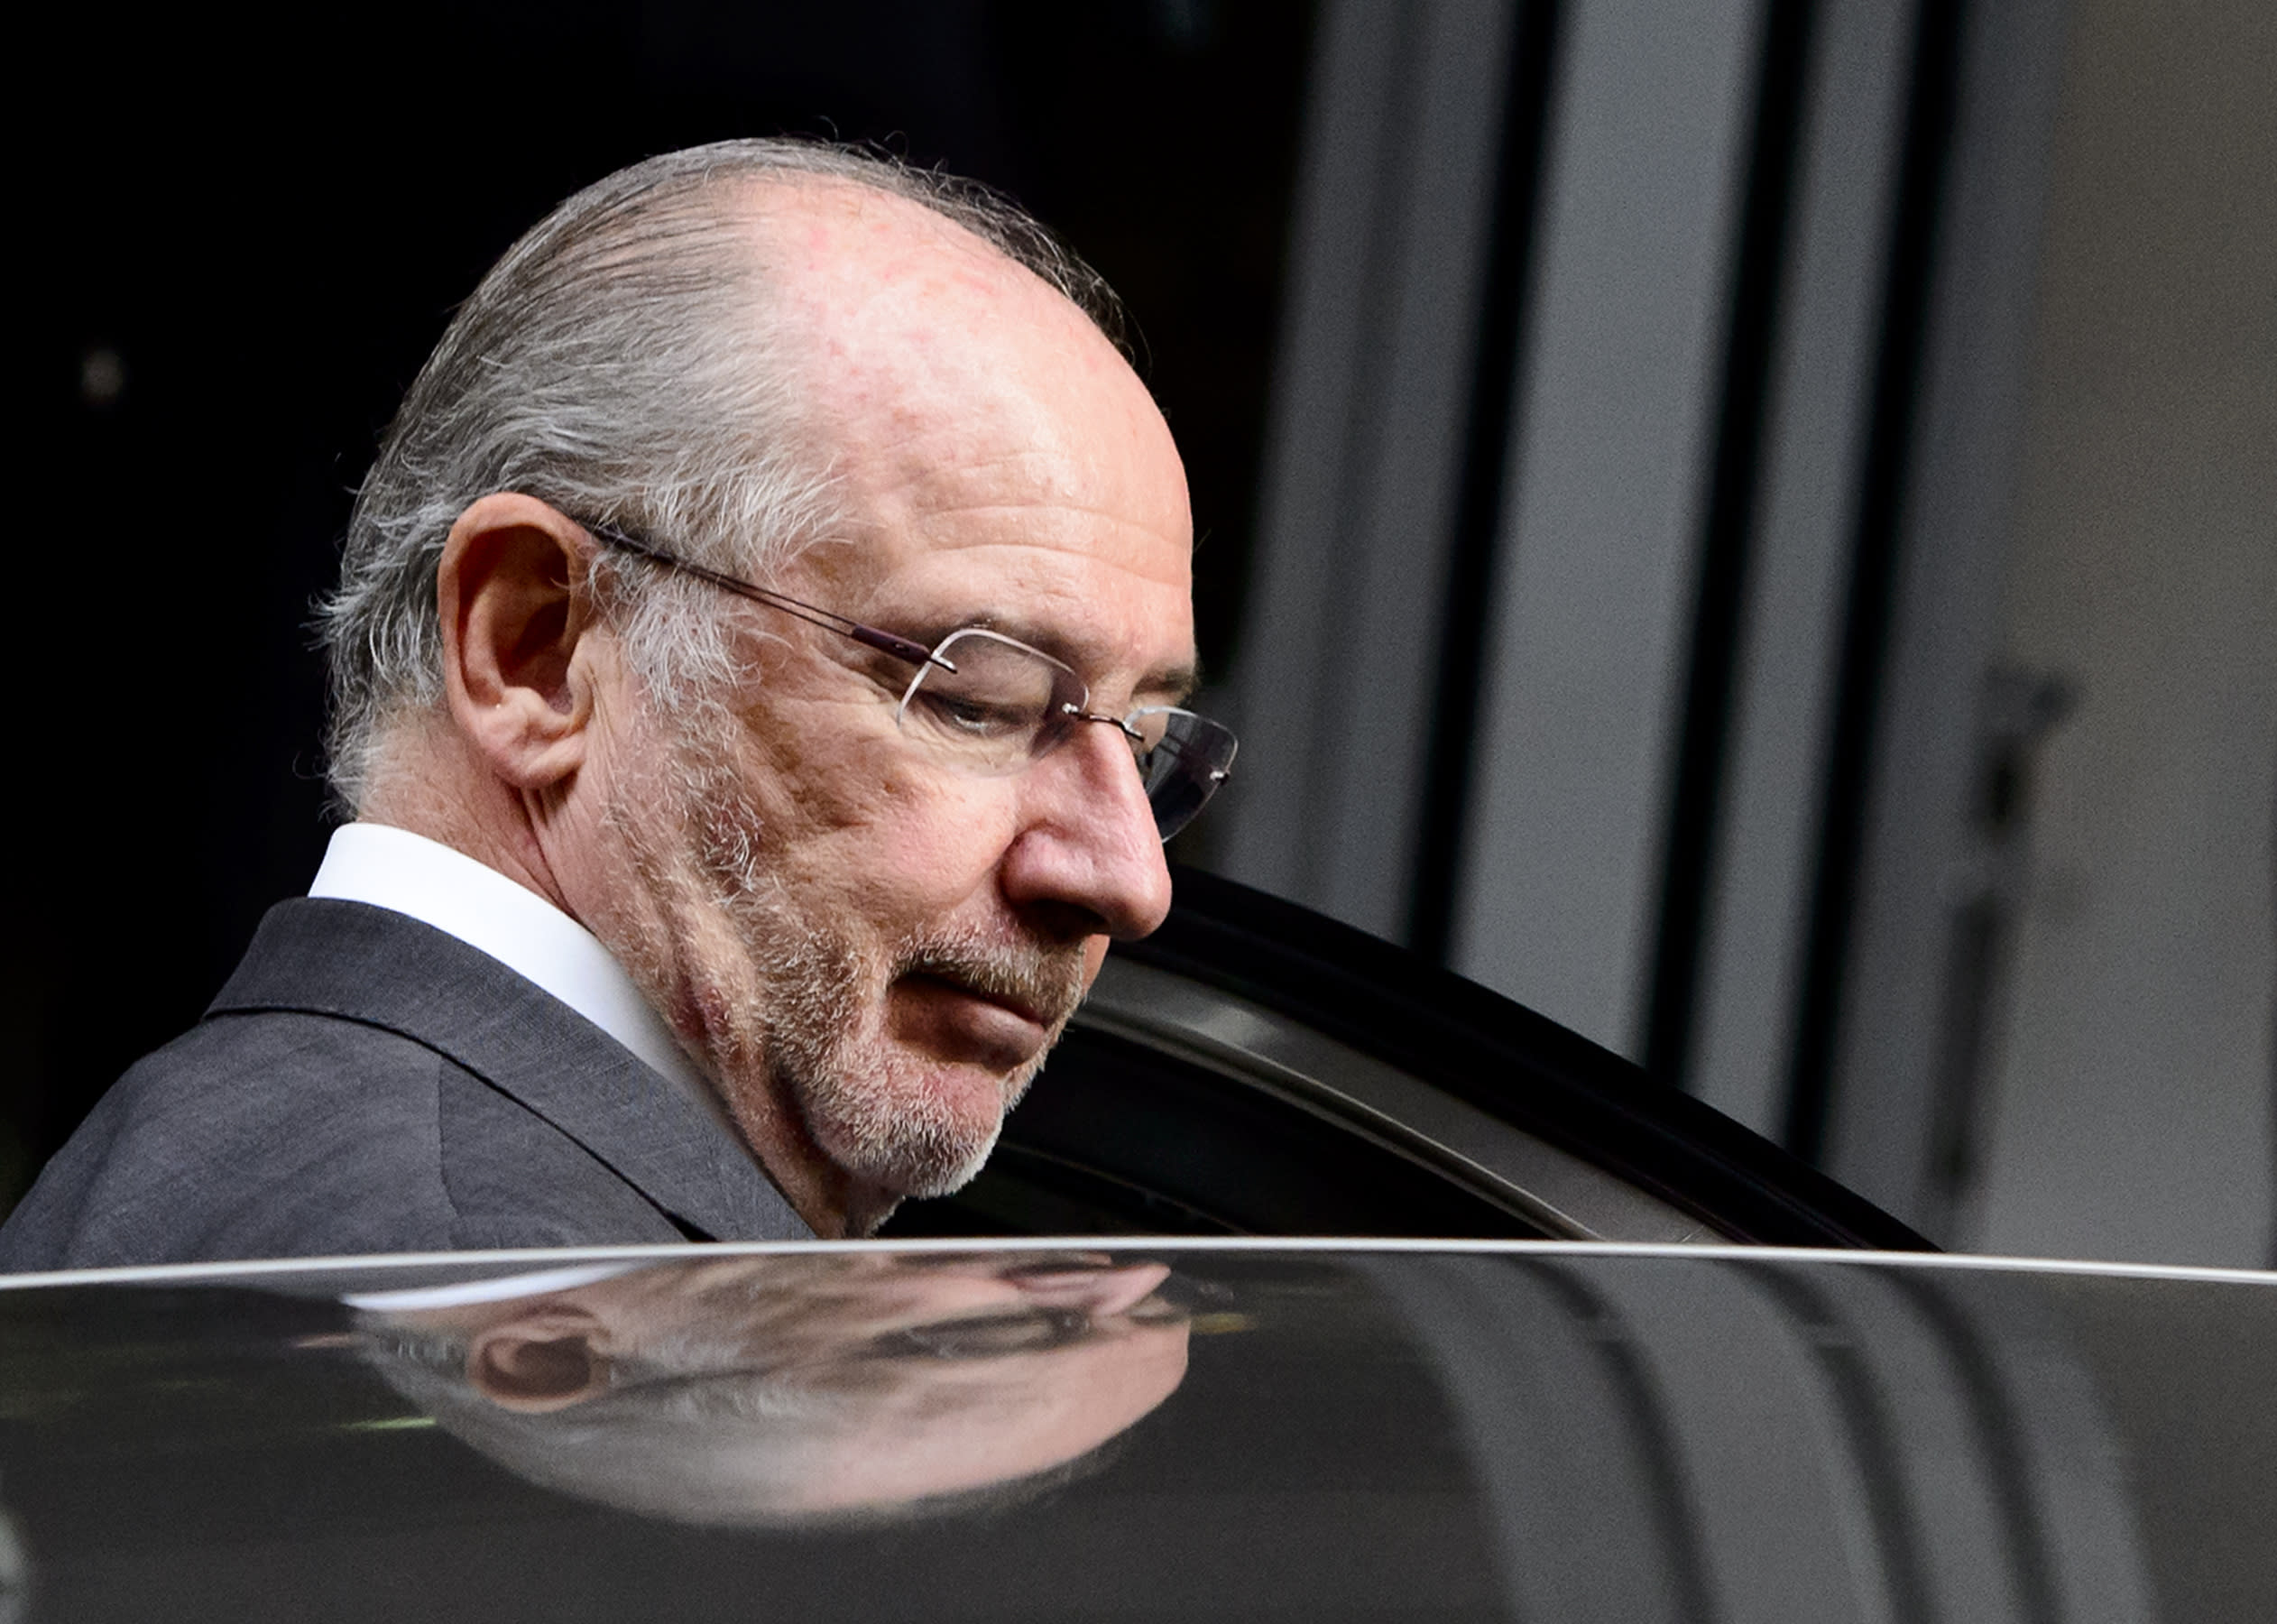 Former IMF head Rodrigo Rato and other bankers are ordered to pay an 800-million-euro ($911 million) court bond